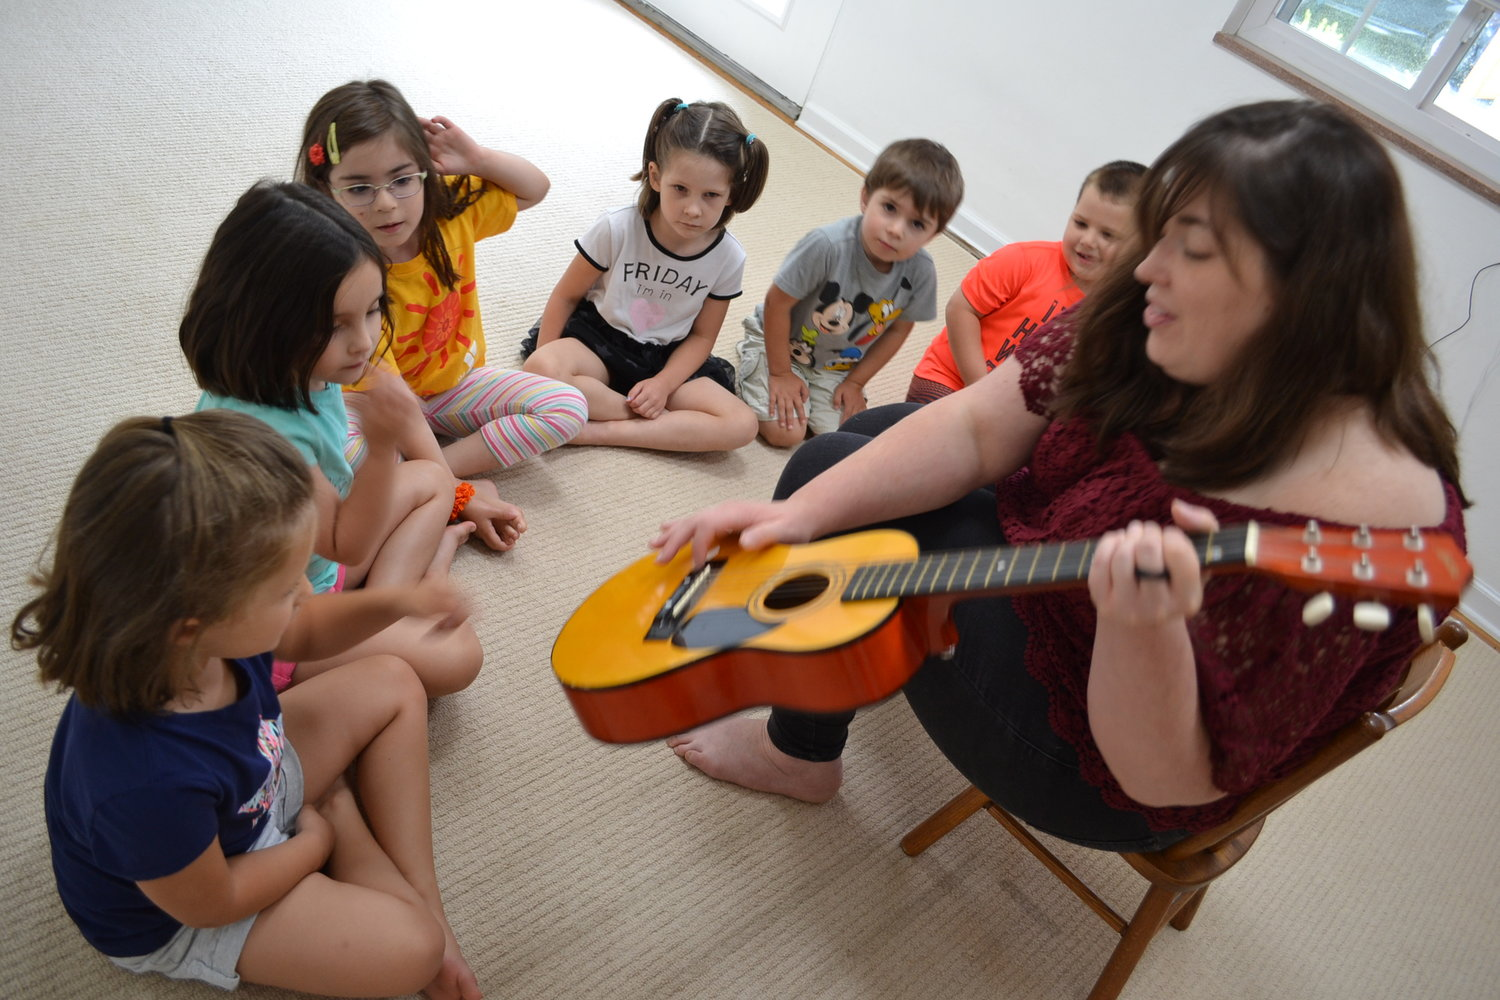 Ms. Rochelle introduces our Music Discovery campers to the guitar